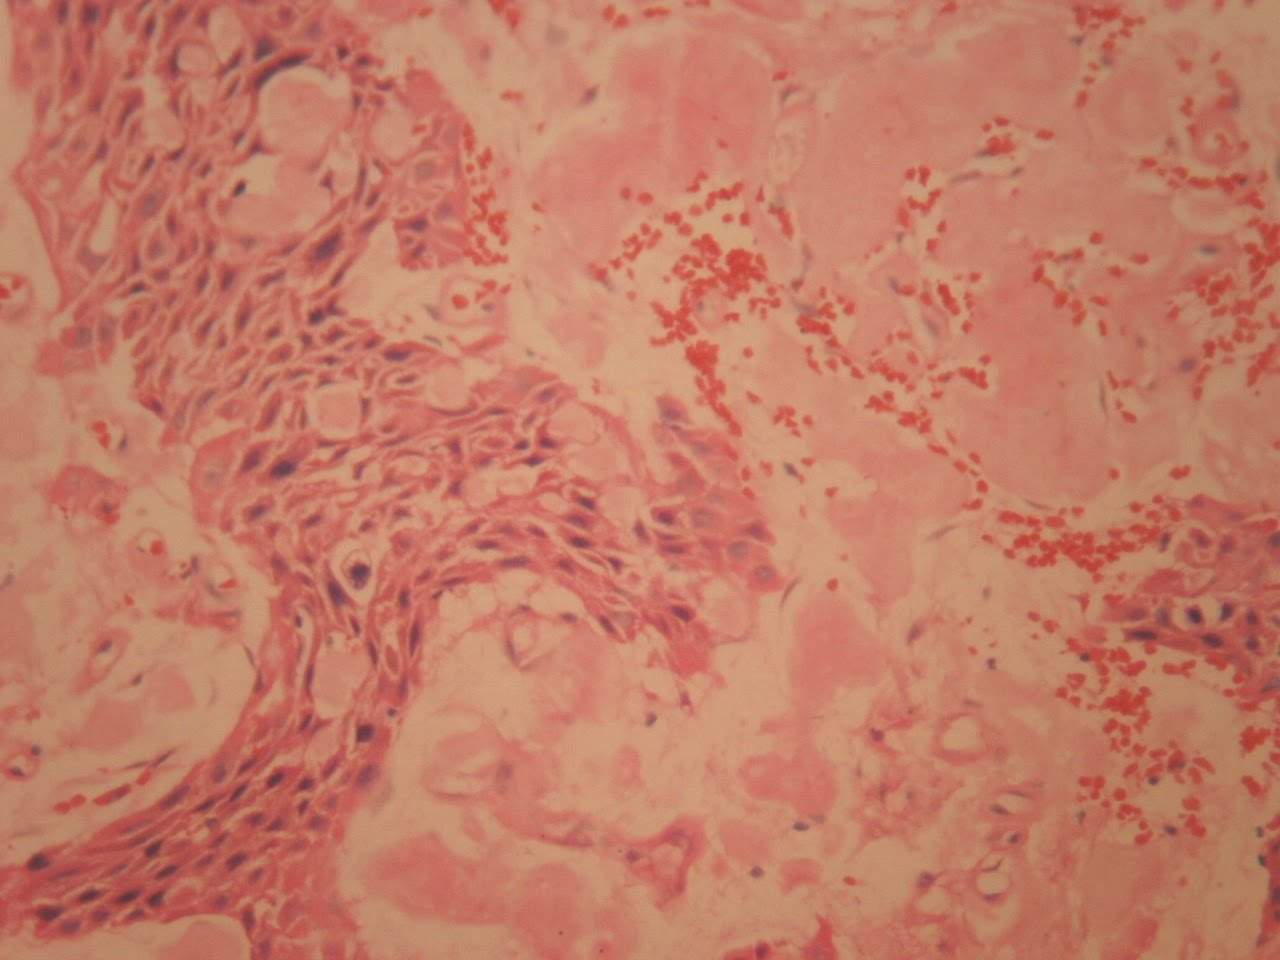 Calcifying Cystic Odontogenic Tumor http://dentistryandmedicine.blogspot.com/2010/12/calcifying-epithelial-odontogenic.html